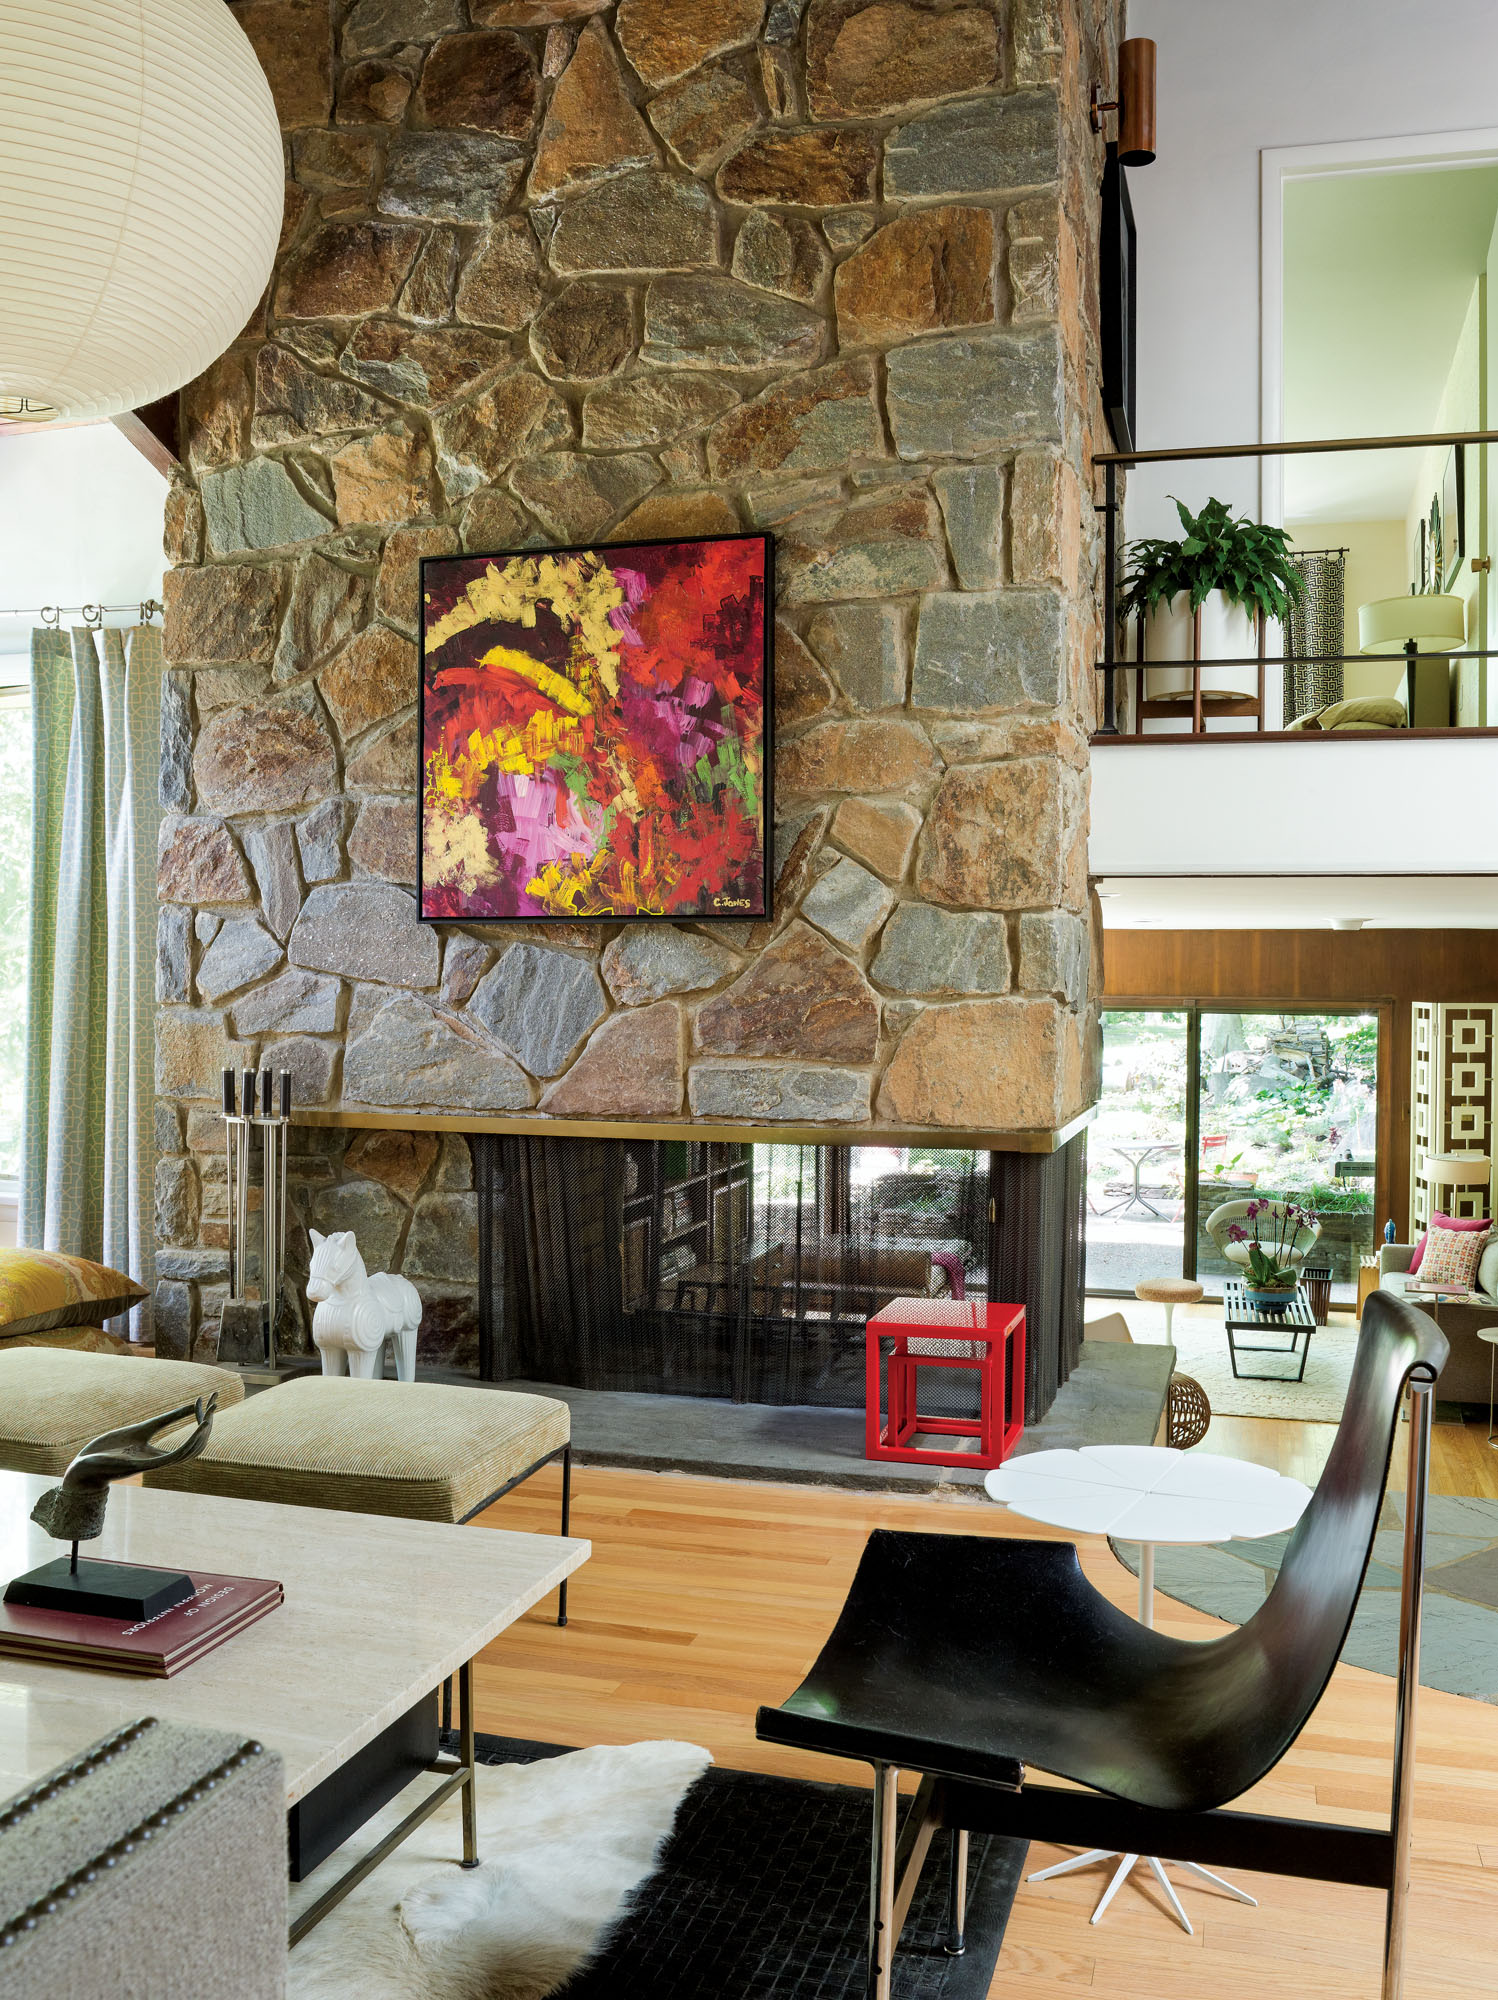 Floating fireplace with stone wall in a 1959 tri-level, Delaware.